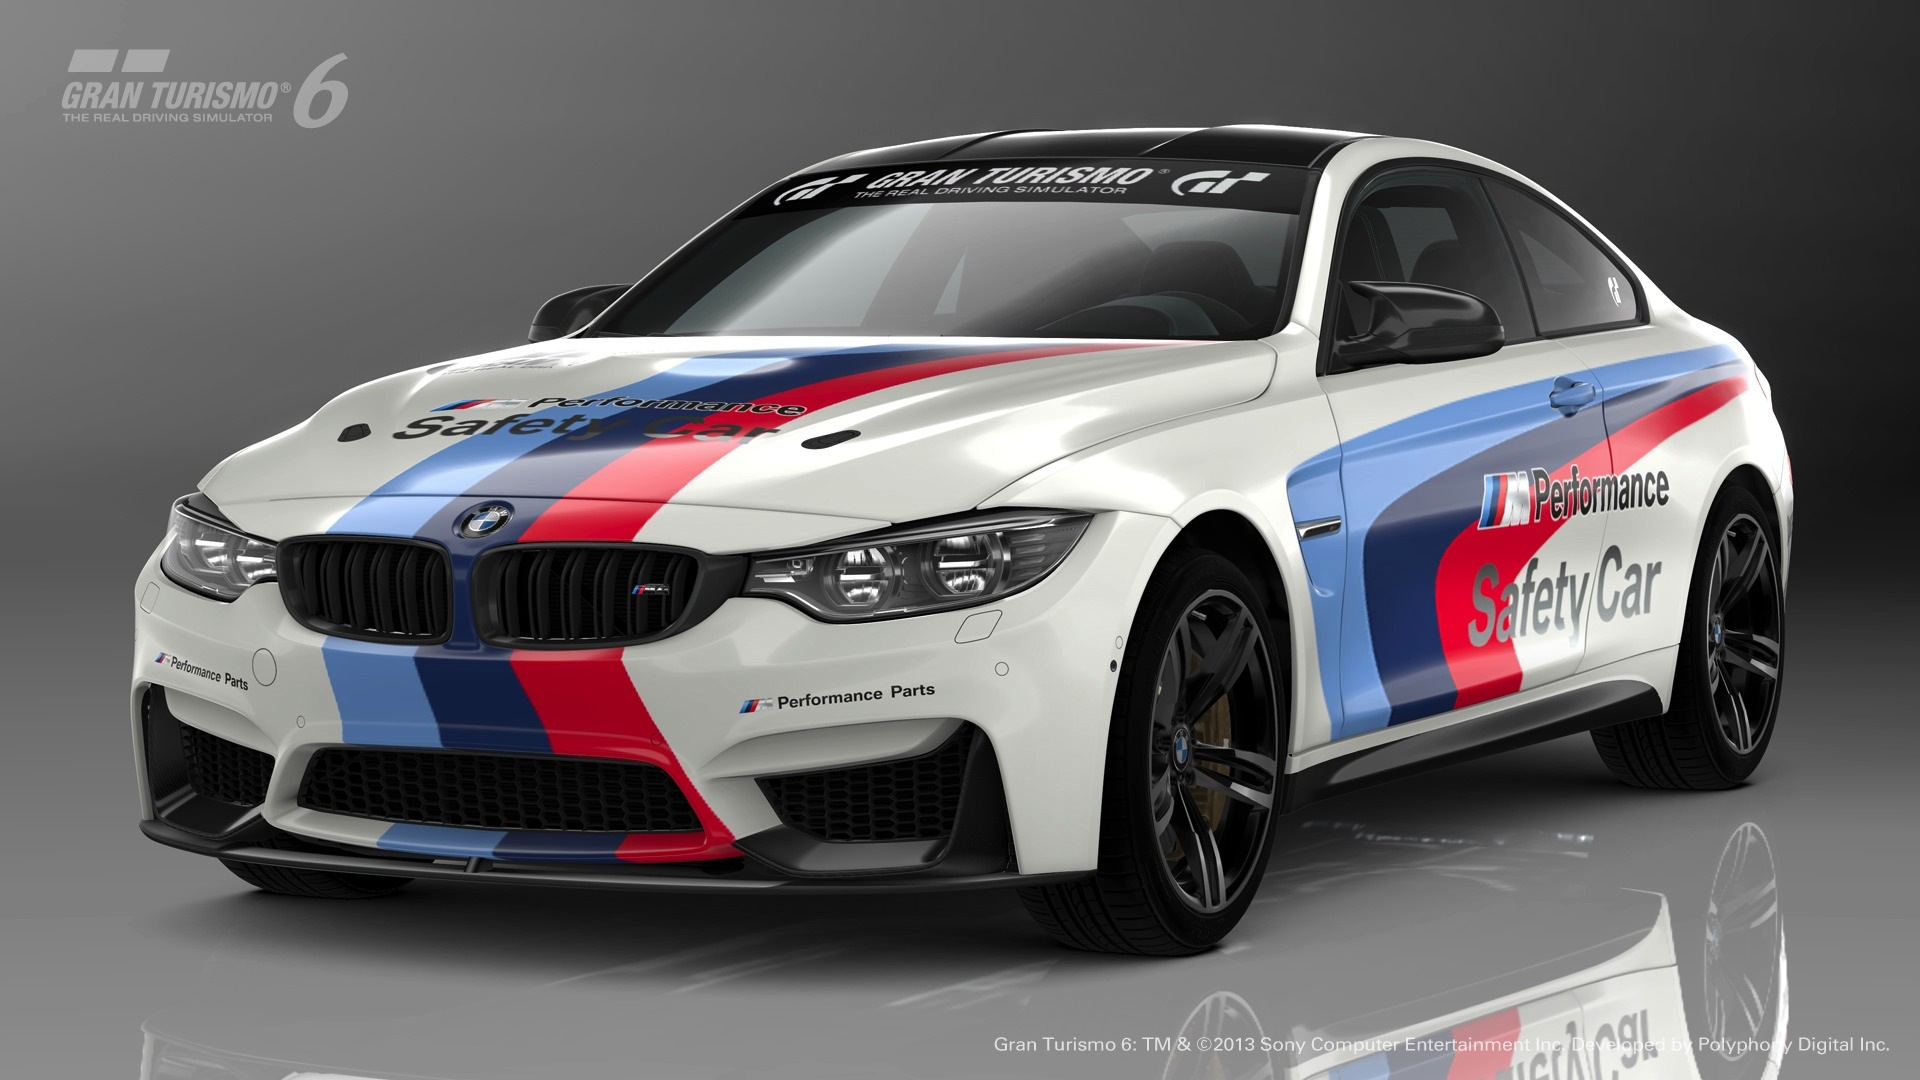 Bmw M4 Safety Car Introduced For Free In The Gran Turismo